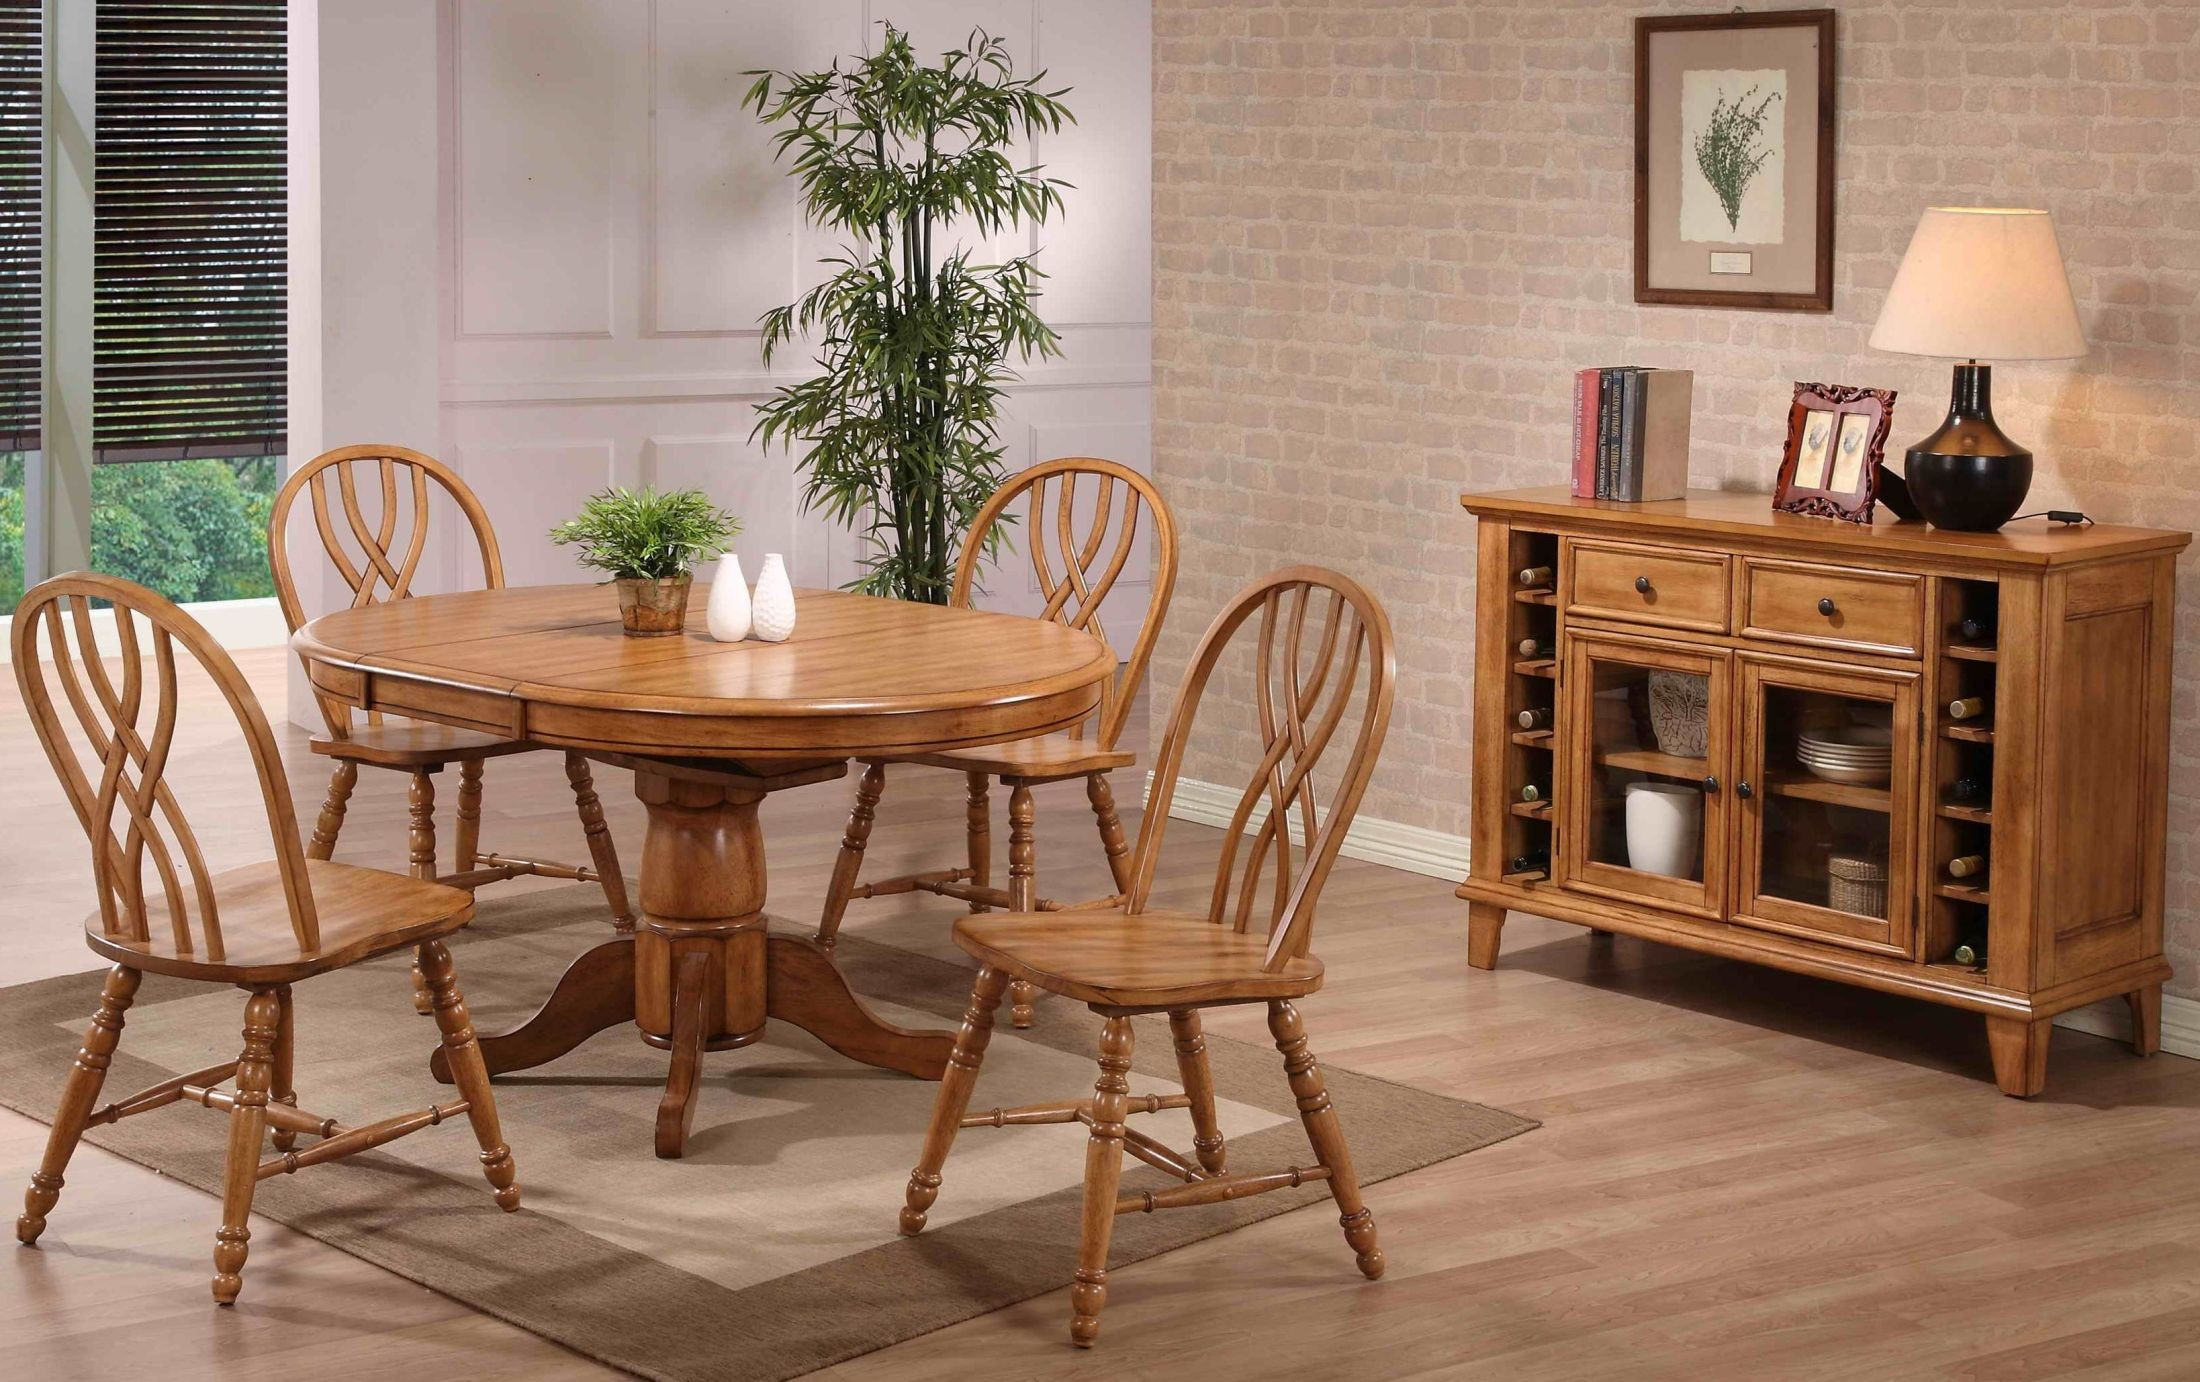 rustic oak single pedestal dining room set 2150 04 t b eci furniture